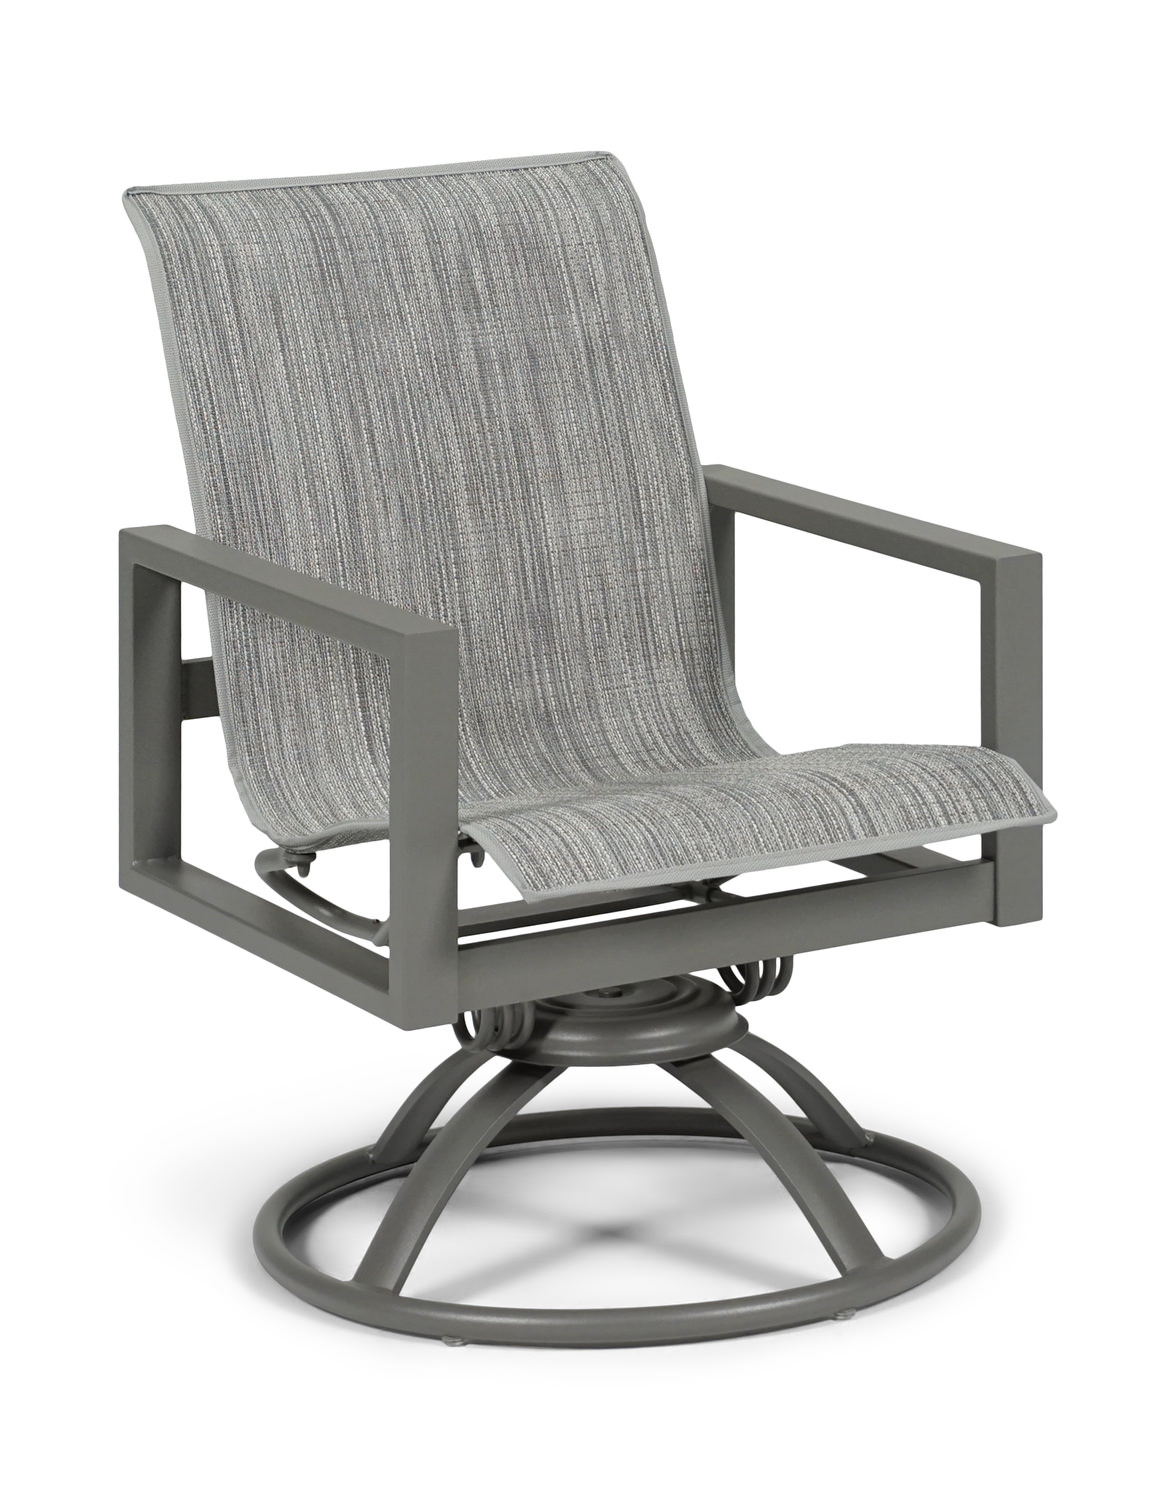 Sutton Low Back Swivel Rocker Lounge Chair Hom Furniture